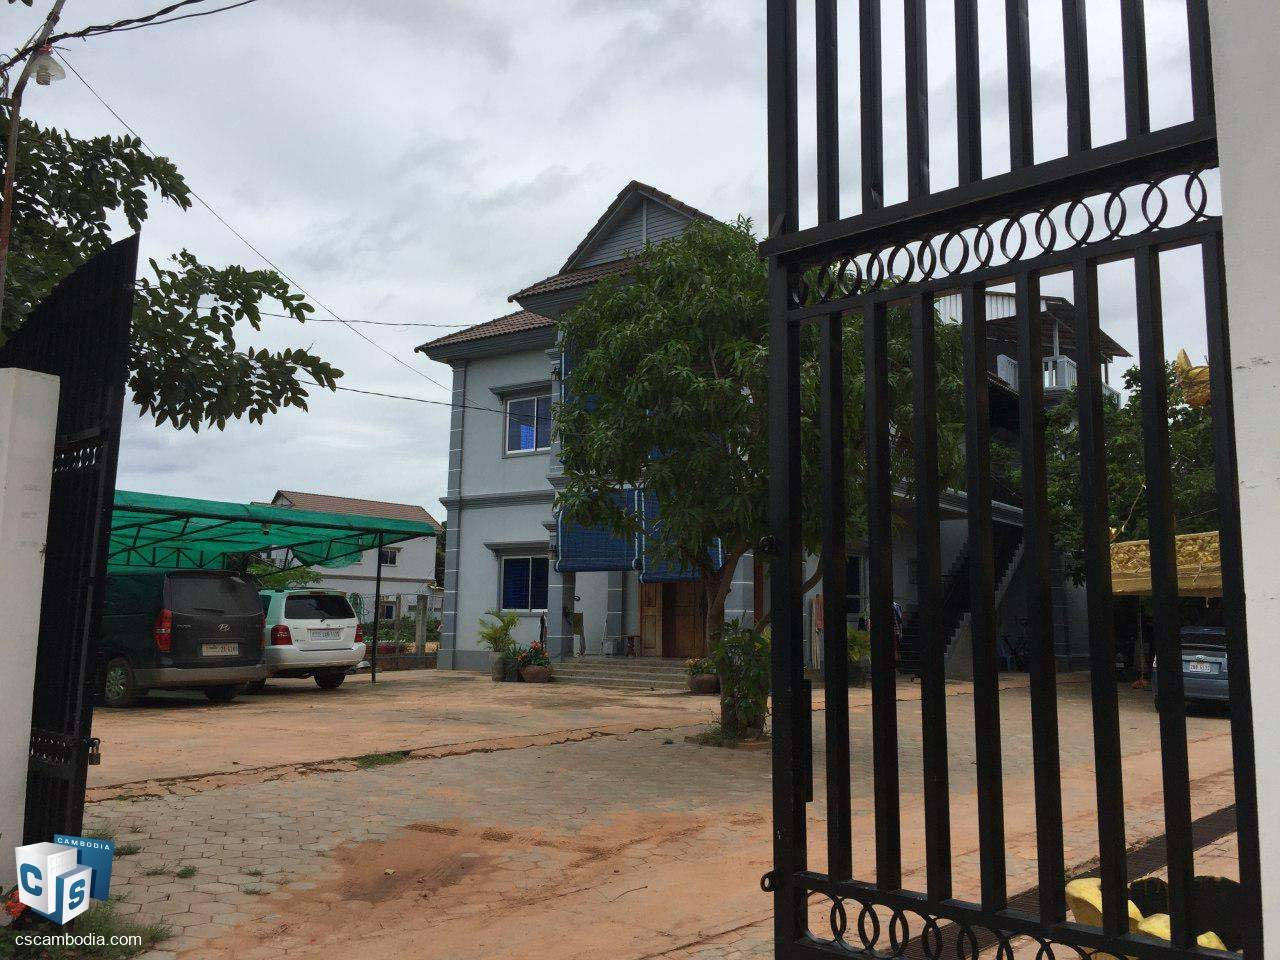 3 Bedroom House Second Floor– For Rent – Svay Dangkum Commune – Siem Reap